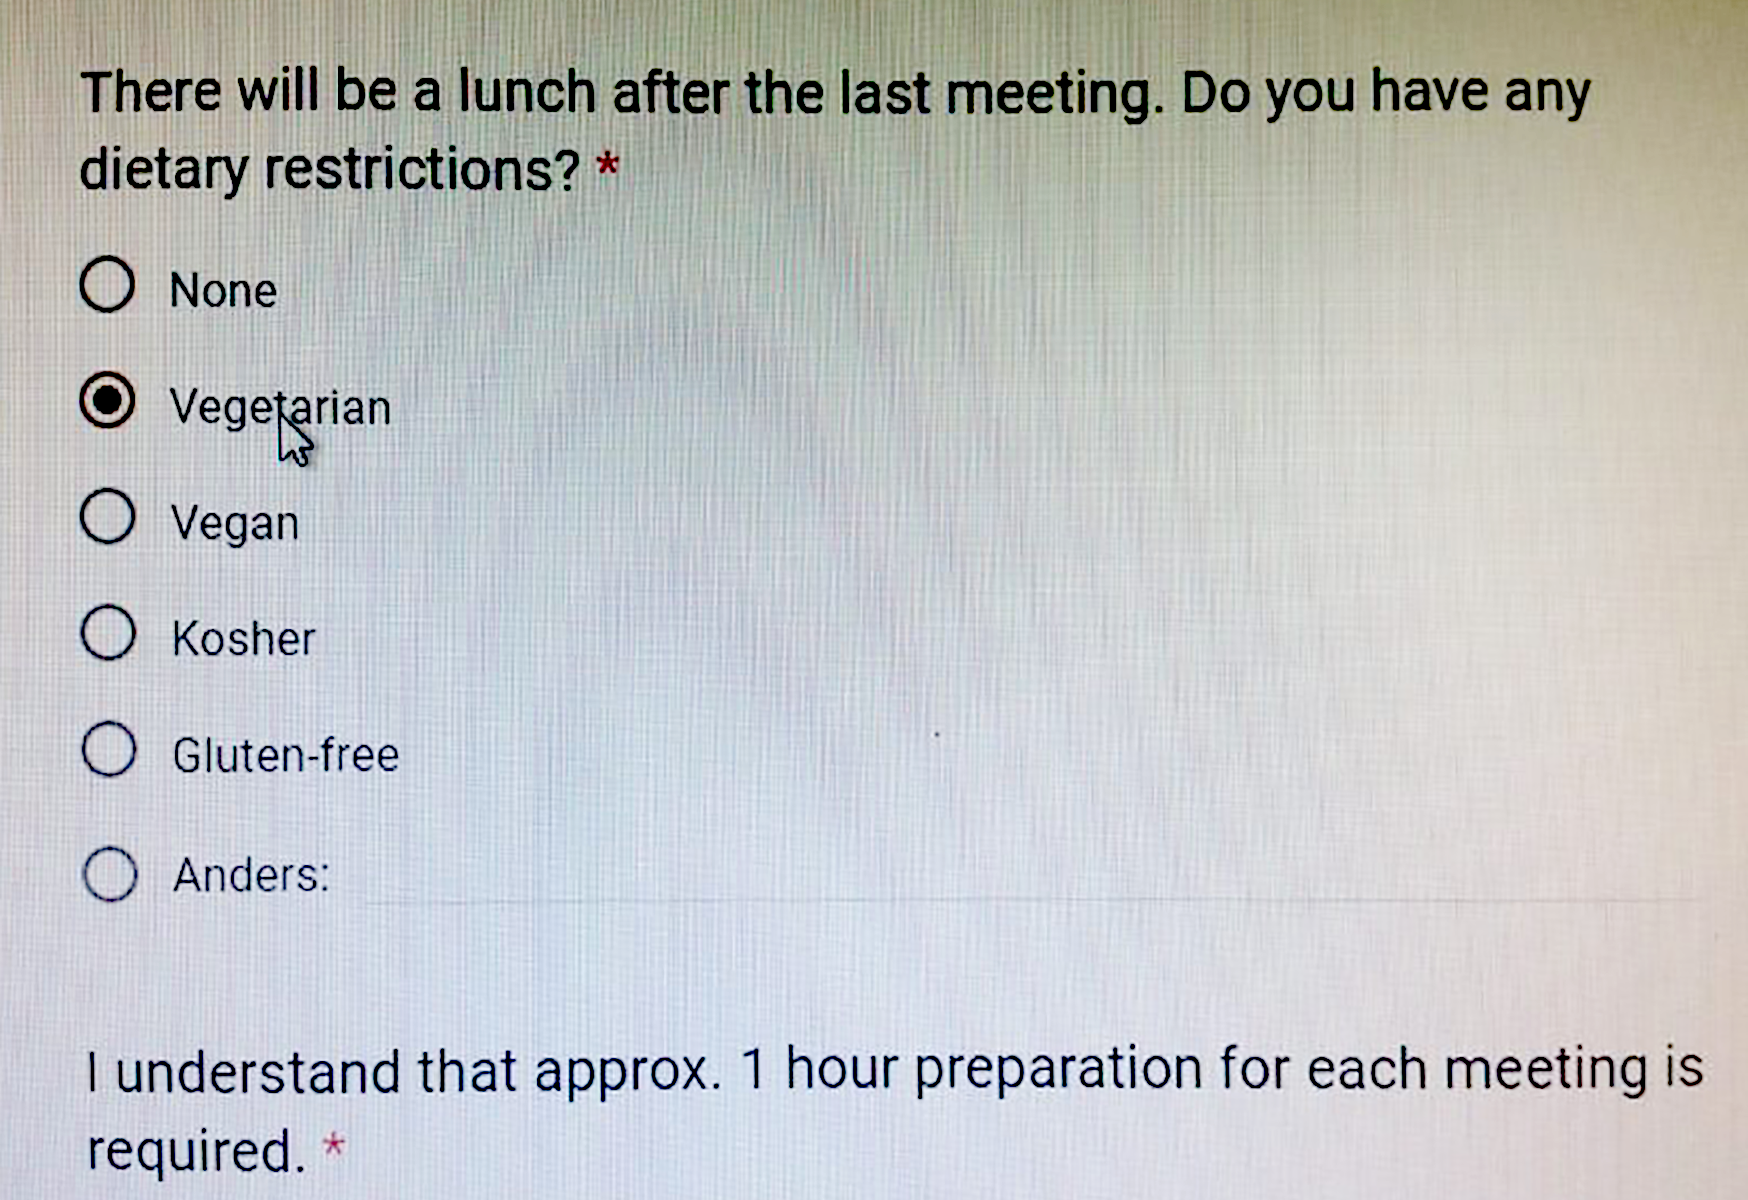 Screenshot of an online form about dietary preferences for an academic event. The categories include None, Vegetarian, Vegan, Kosher, Gluten-free and Other.